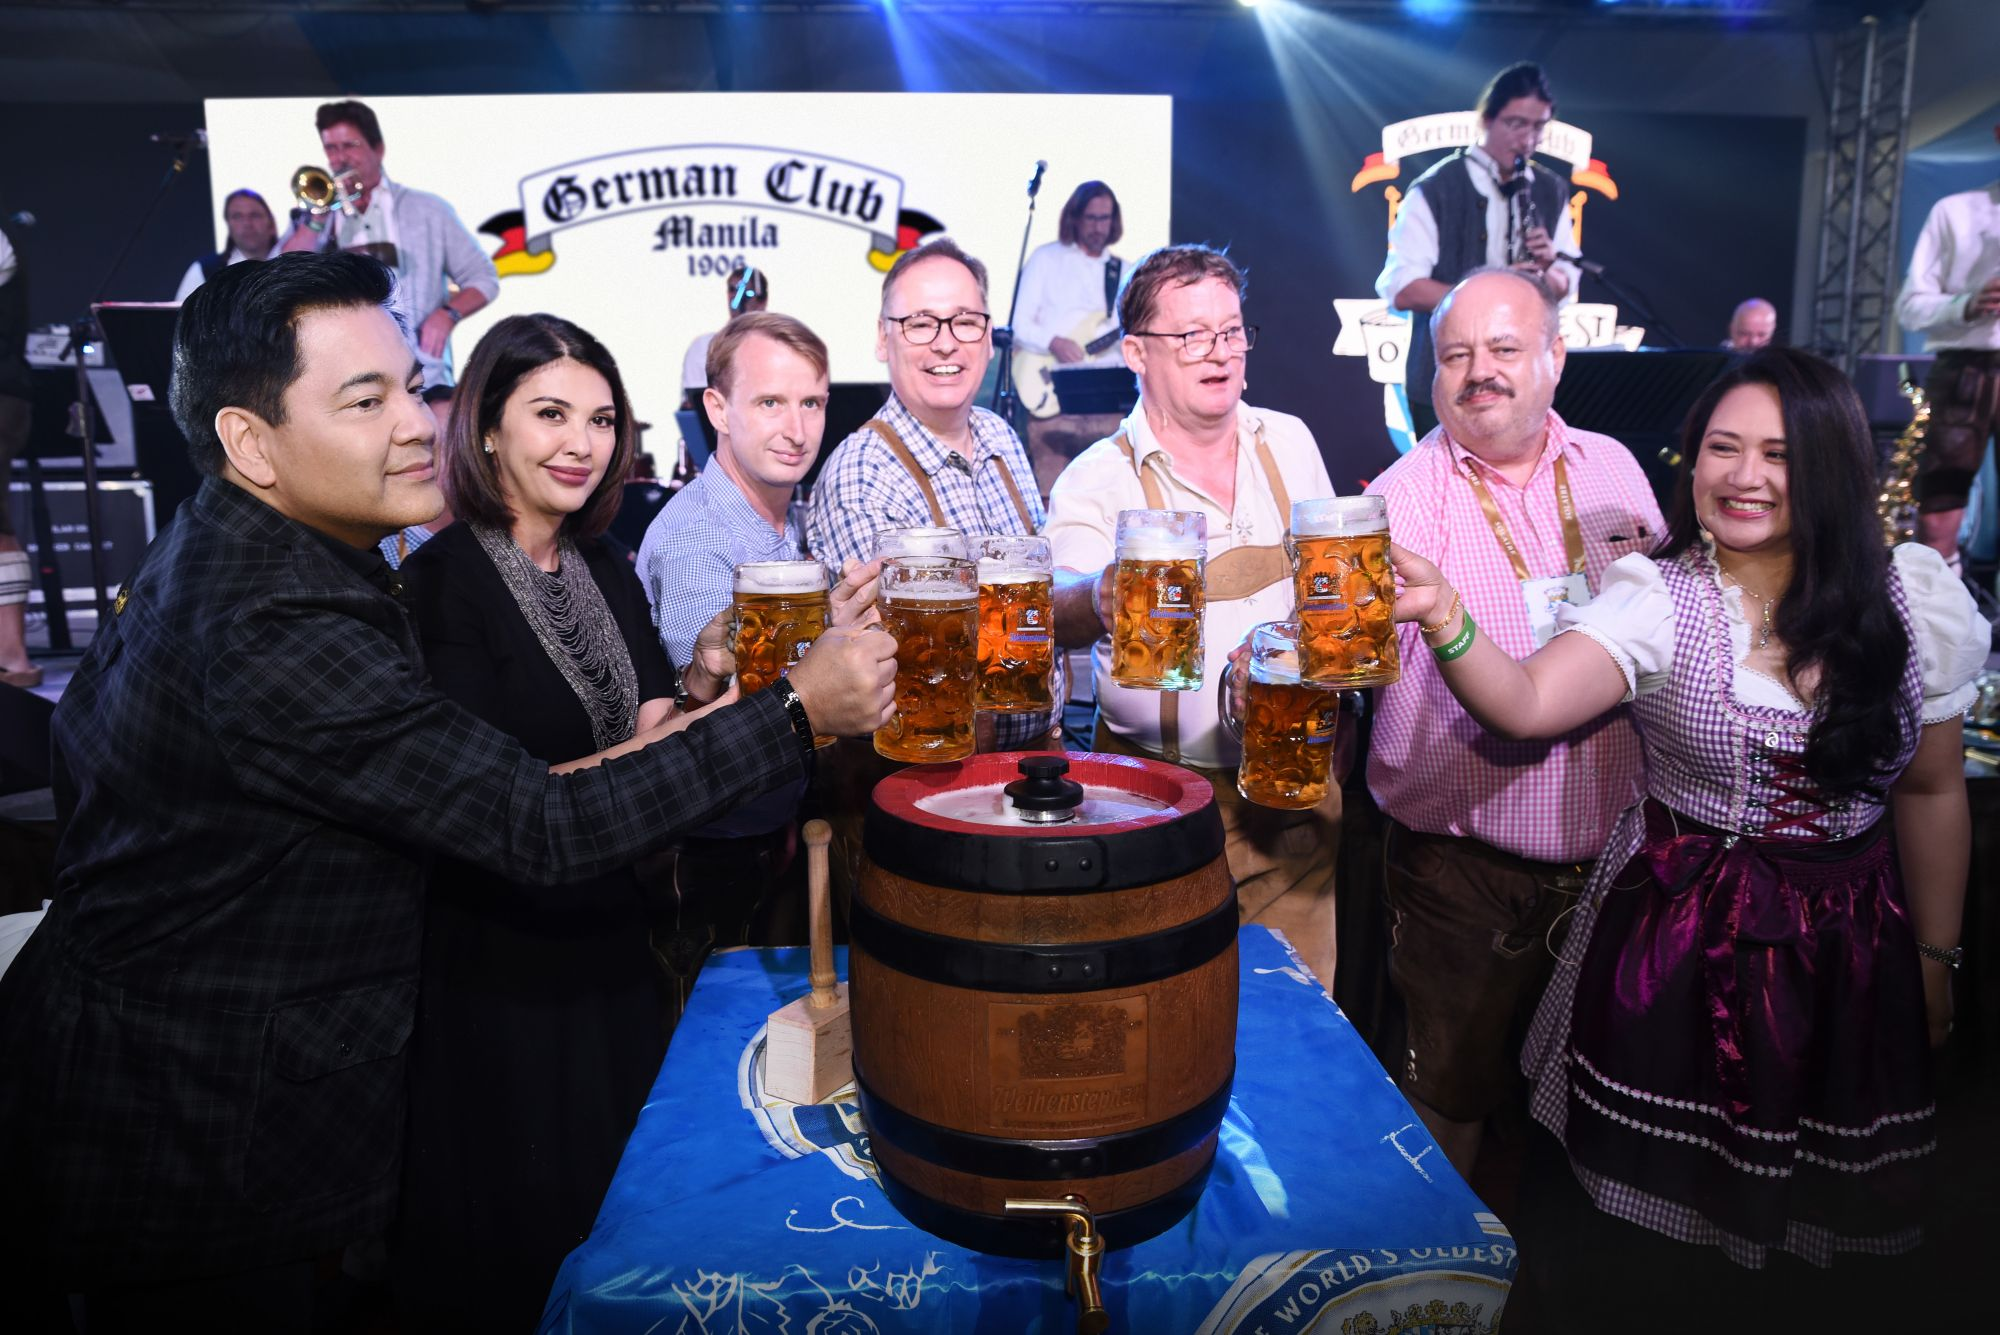 The German Club Manila and Solaire Cancel Oktoberfest 2020